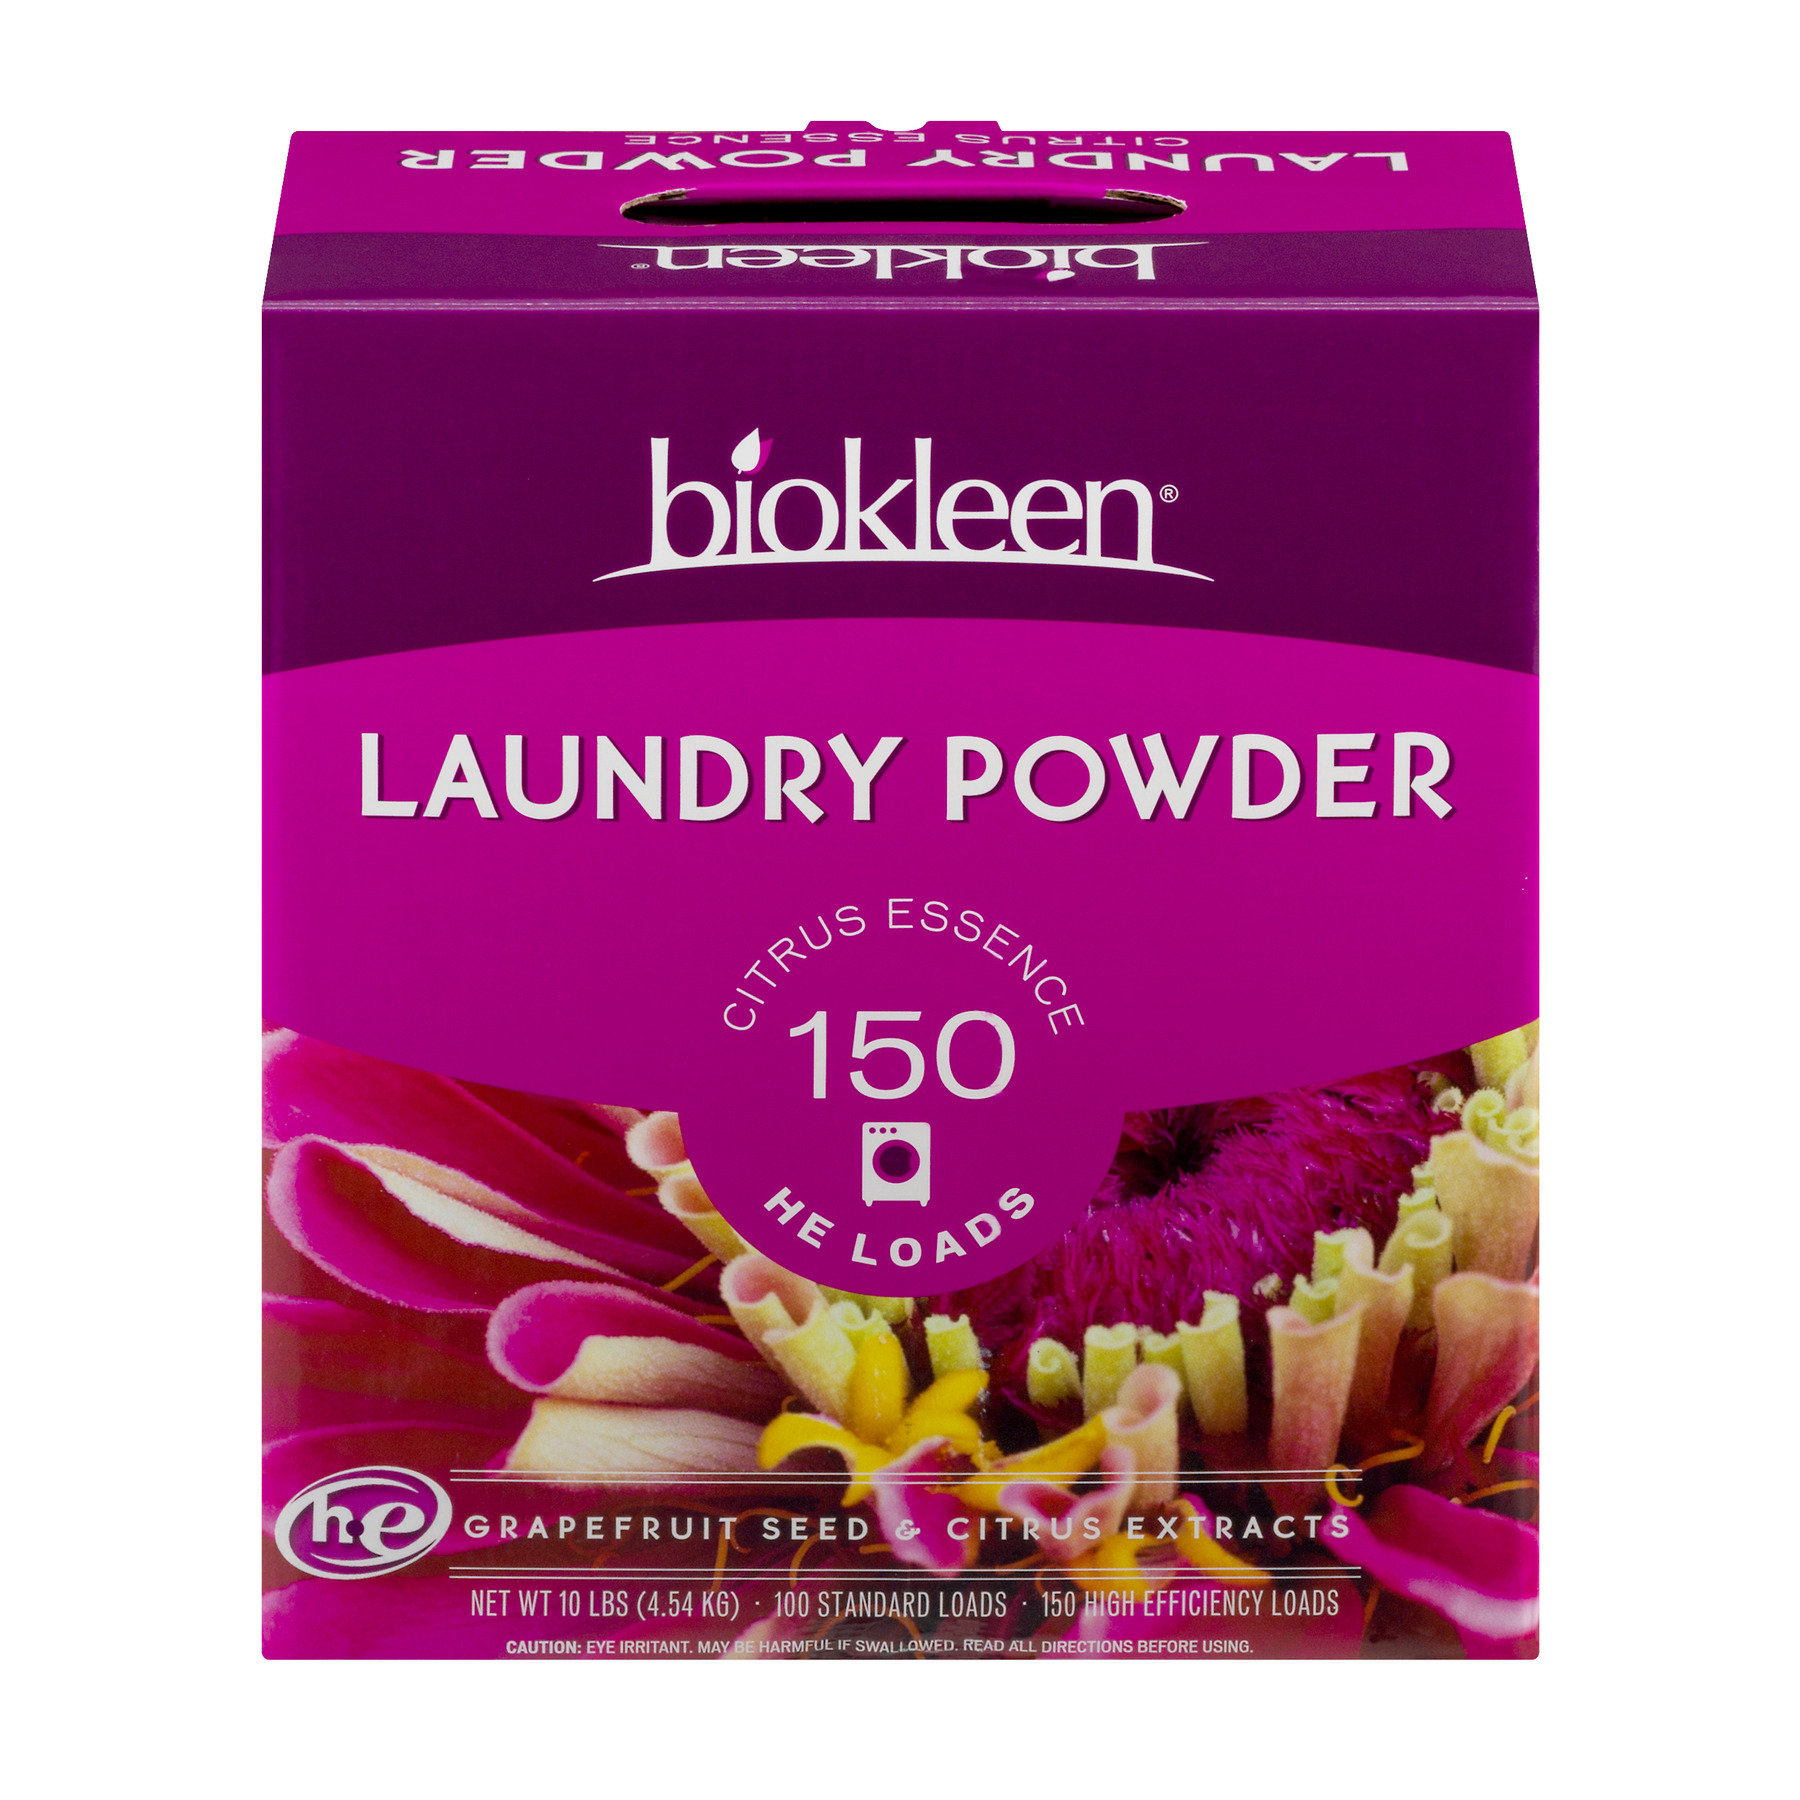 Biokleen Laundry Powder Citrus Essence, 10.0 LB